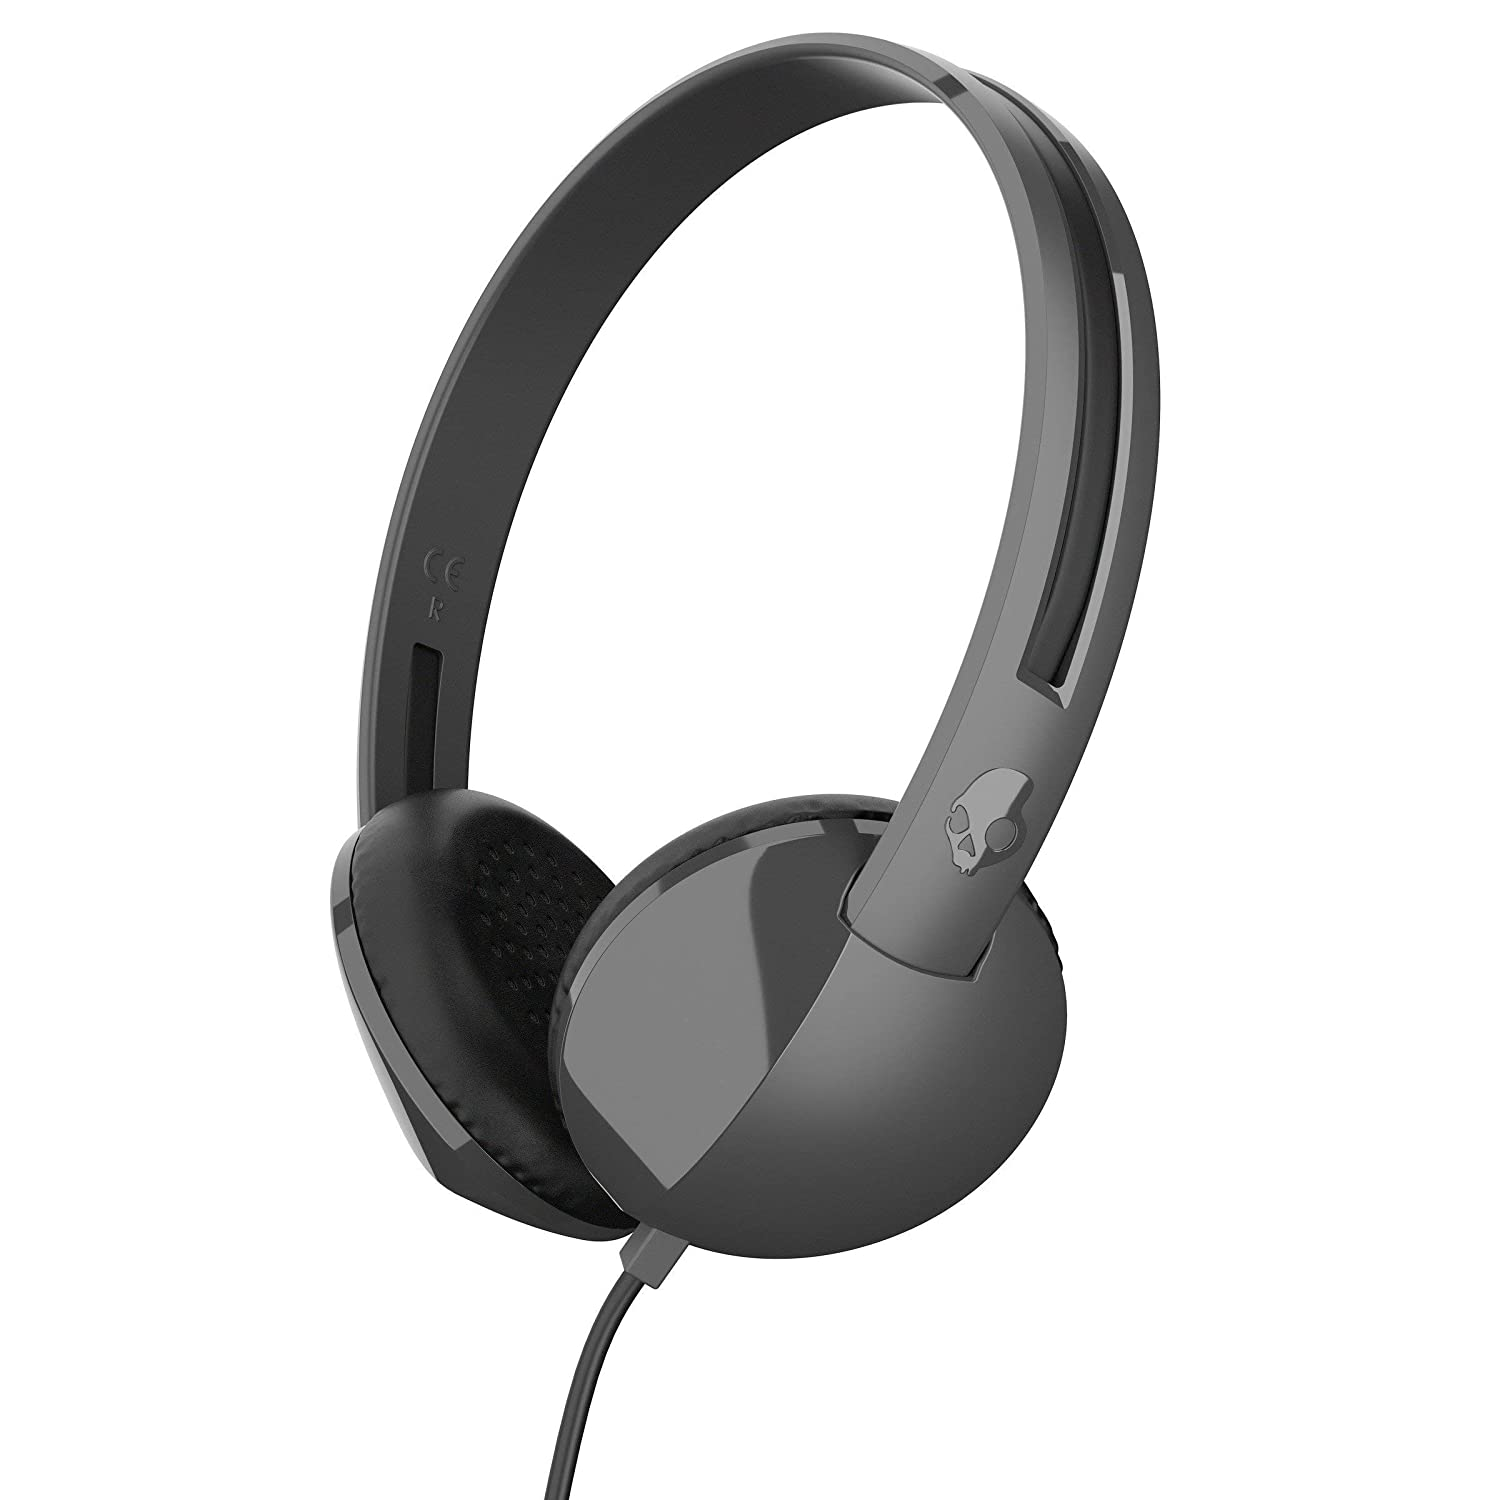 Renewed  Skullcandy S5LHZ J576 Anti Stereo Headphones Charcoal Black